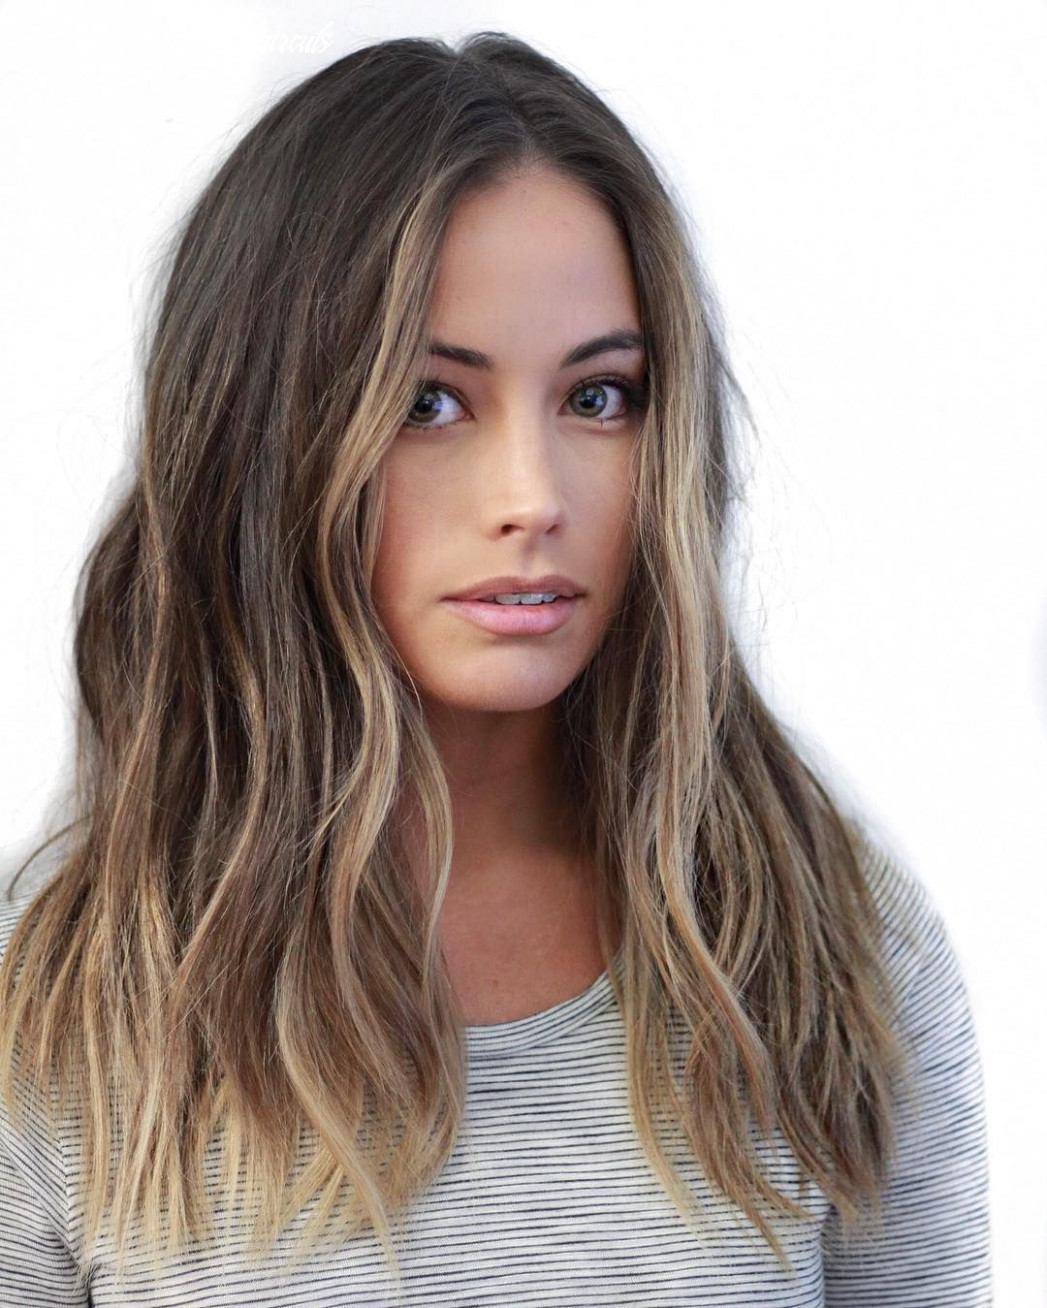 Cool 12 stylish hairstyle ideas for mid length hair and mid length